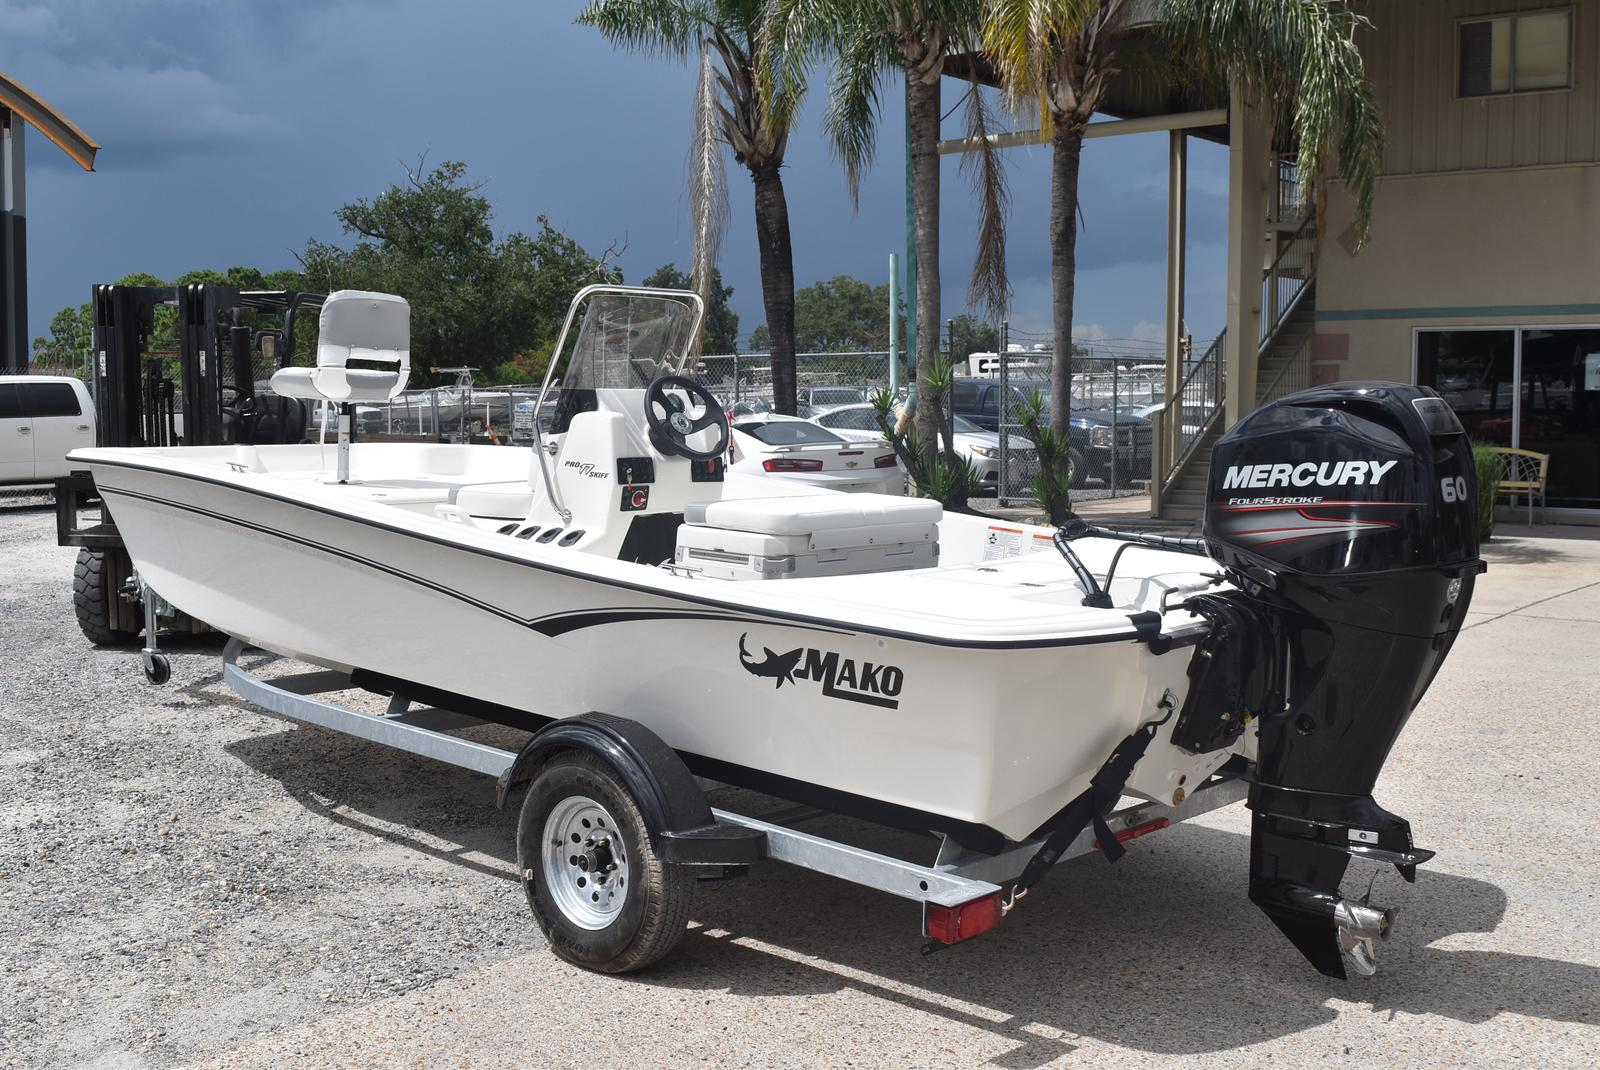 2020 Mako boat for sale, model of the boat is Pro Skiff 17, 75 ELPT & Image # 198 of 702